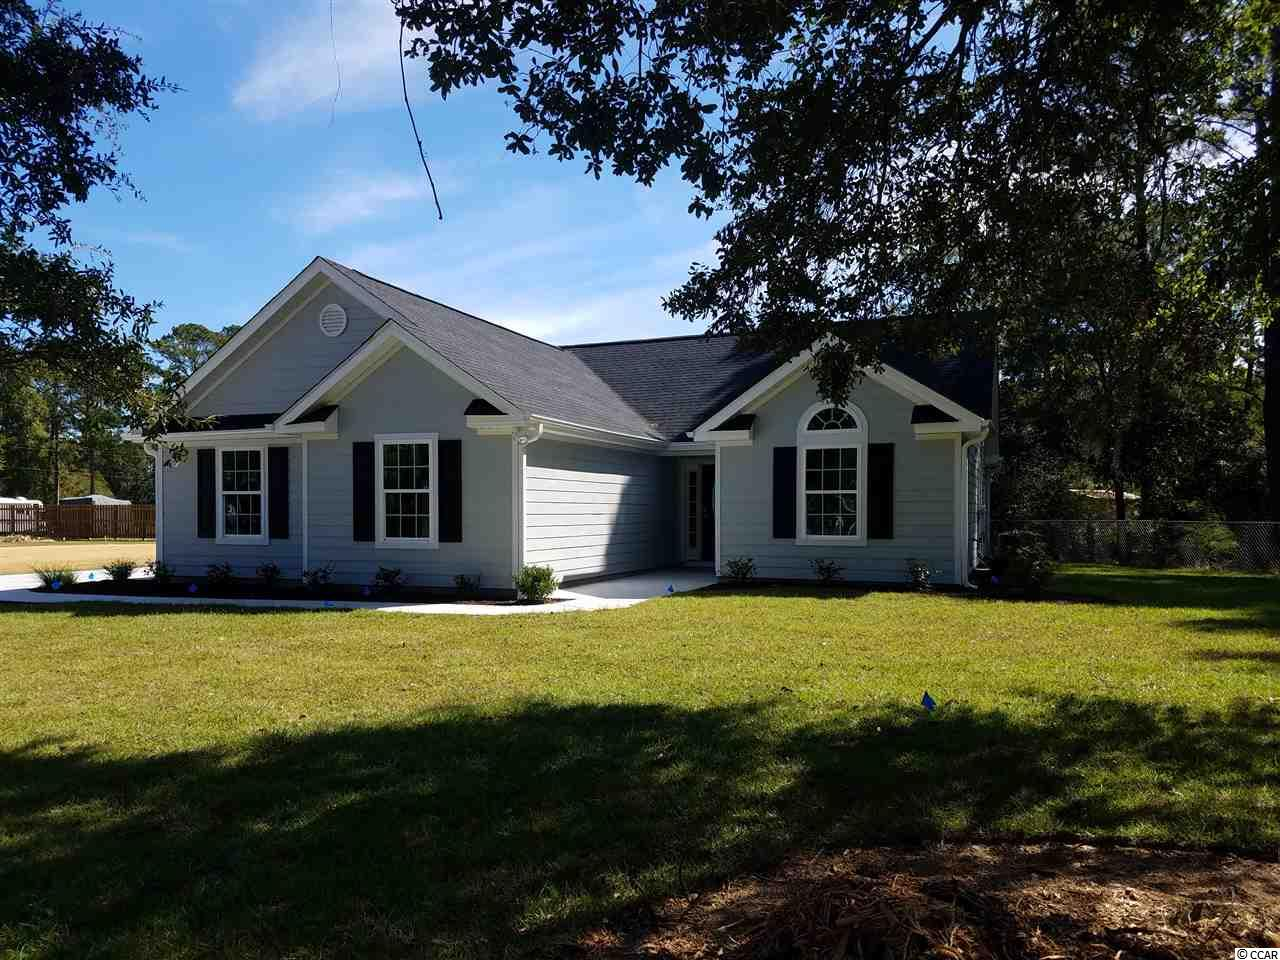 """( Lot 2). You can pick all your selections and colors by getting in early. Welcome home to Murrells Inlet. You are going to see why everyone want to live the """"Inlet Lifestyle"""" This home provides no different. Located a stones throw from Wacca Wache Landing and Marina and, a mile from the Inlet/public boat landing. Wide open floor plan with lots of natural light. 3 bedrooms, 2 bathrooms, 2 car garage, walk-in pantry, and, patio. All upgraded features that will check off every box on your list. NO HOA, large yard, and, plenty room for all your toys. There will be an over sized side driveway for an RV or boat. This will be a very small planned development consisting of 5-6 homes. You need to check this one out before it is gone. This would make an ideal primary OR secondary home."""